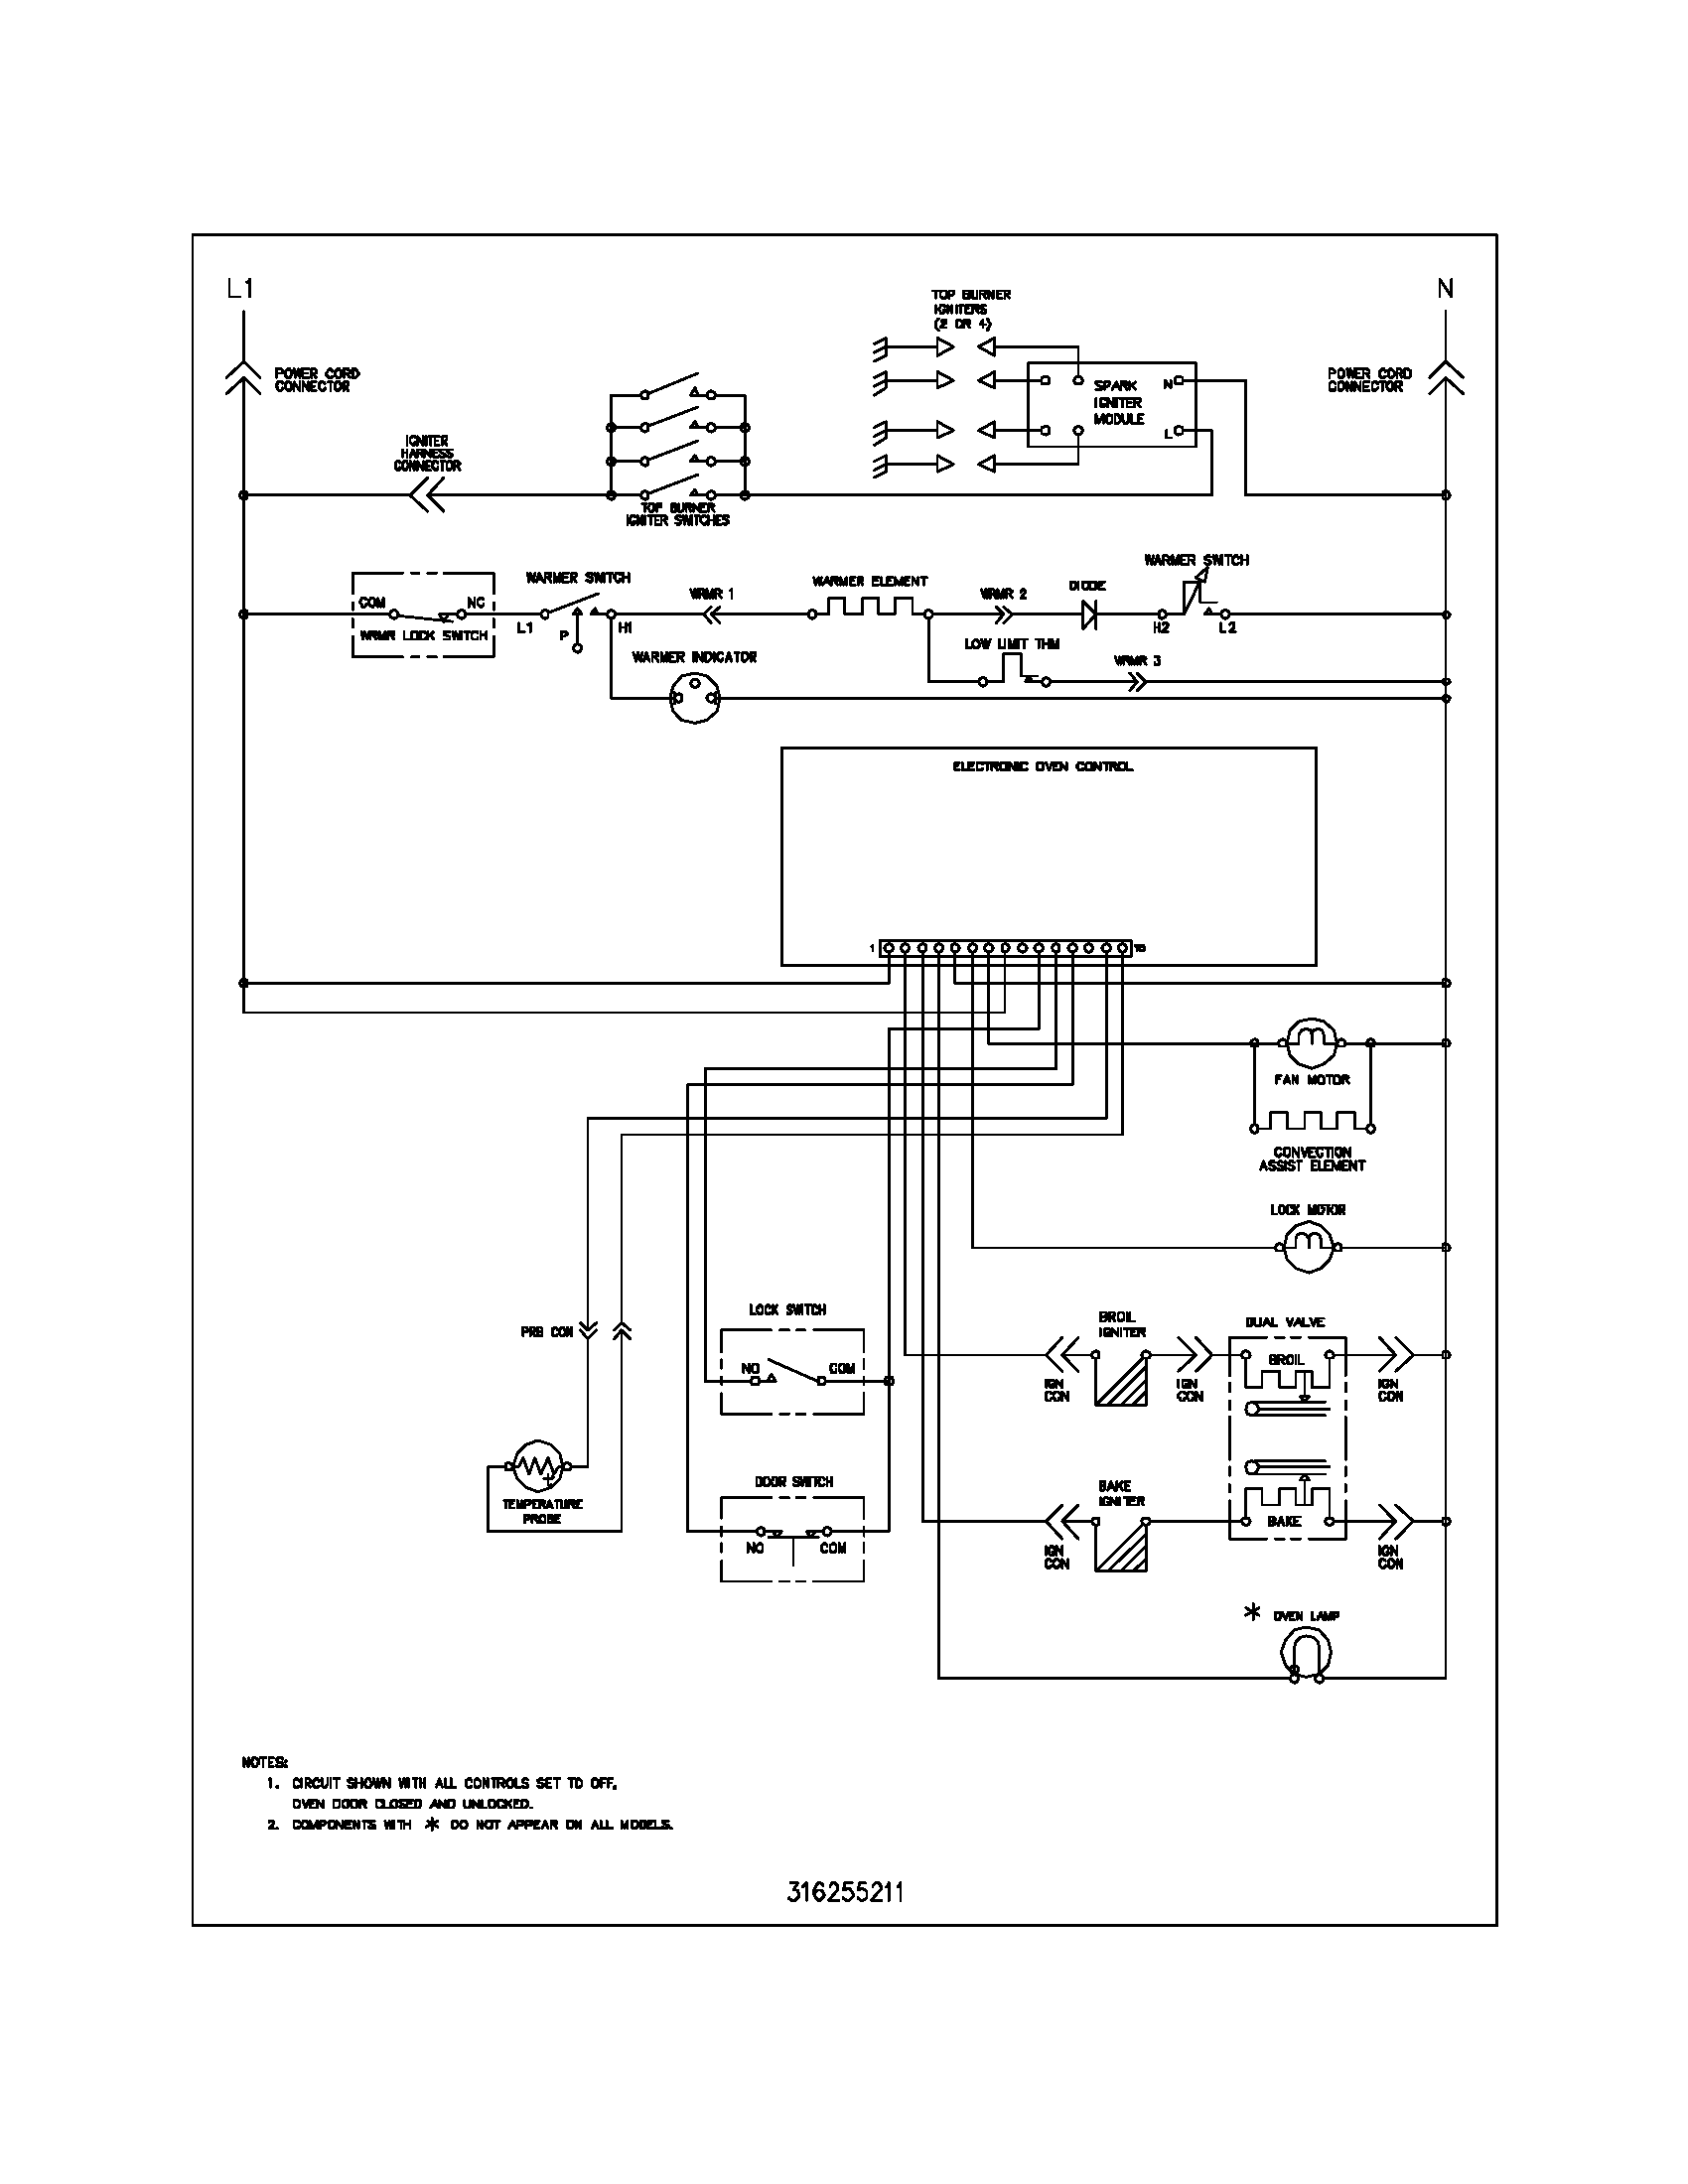 wiring schematic parts frigidaire freezer wiring diagram frigidaire ice maker wiring frigidaire wiring diagram at honlapkeszites.co